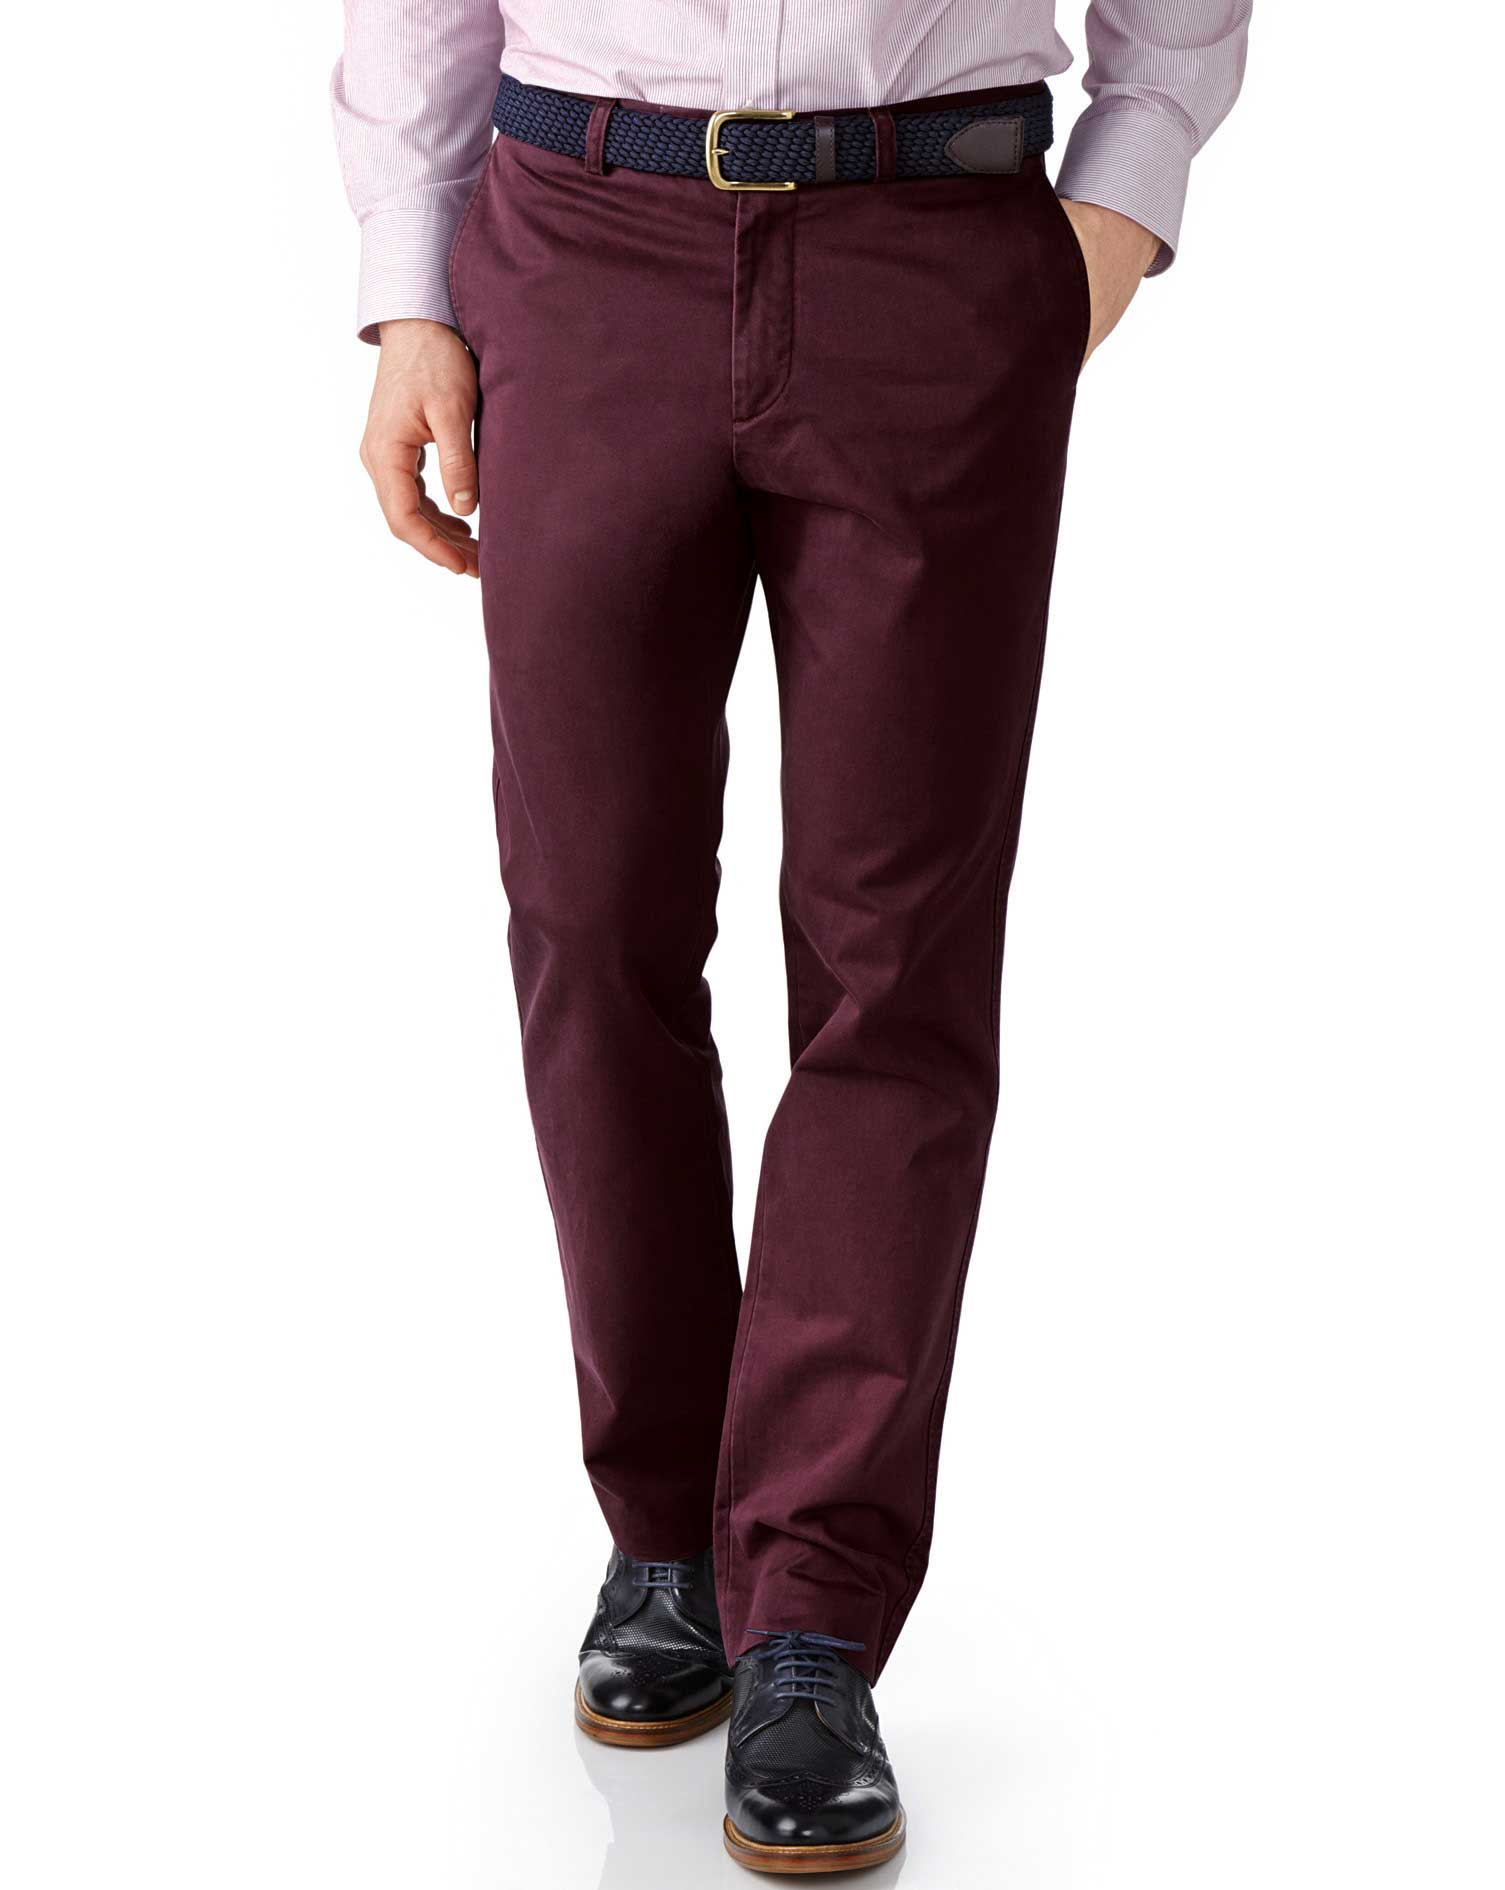 Wine Slim Fit Flat Front Cotton Chino Trousers Size W42 L29 by Charles Tyrwhitt